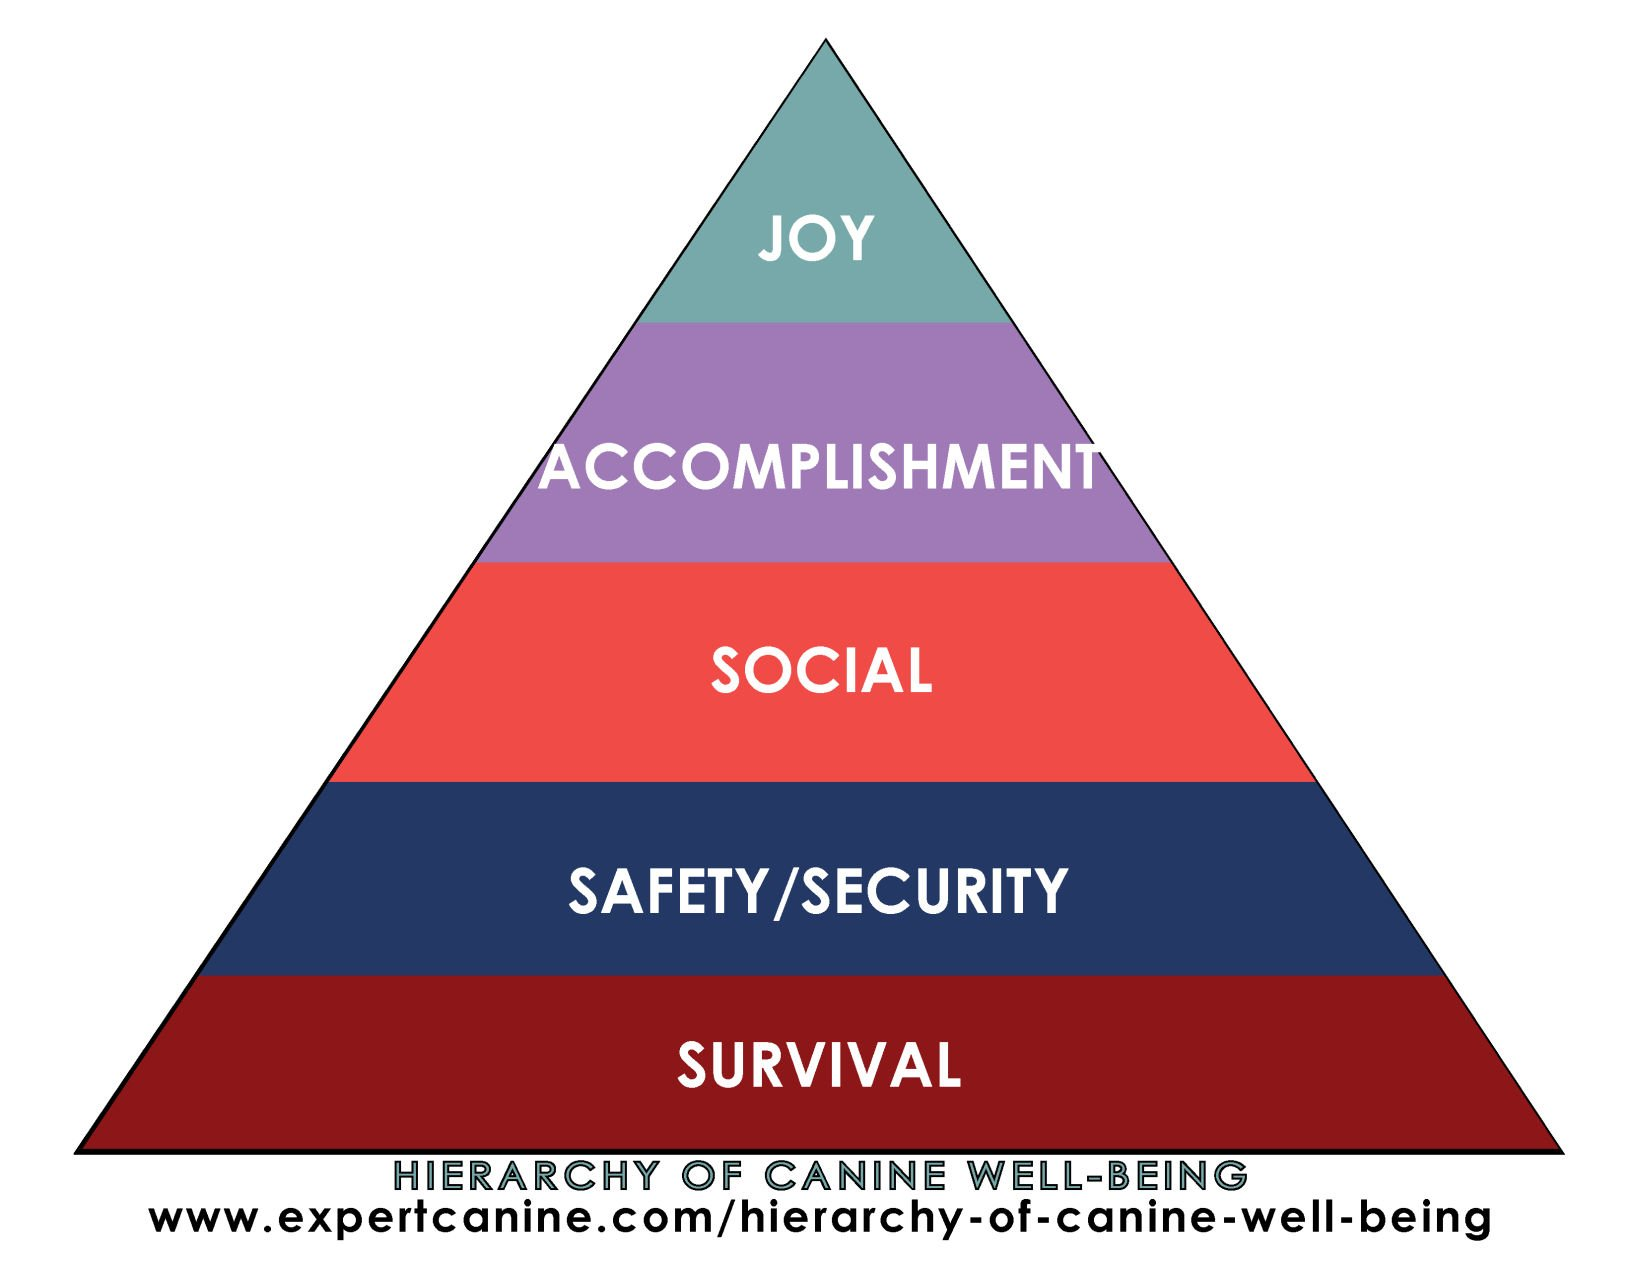 Hierarchy of canine well-being